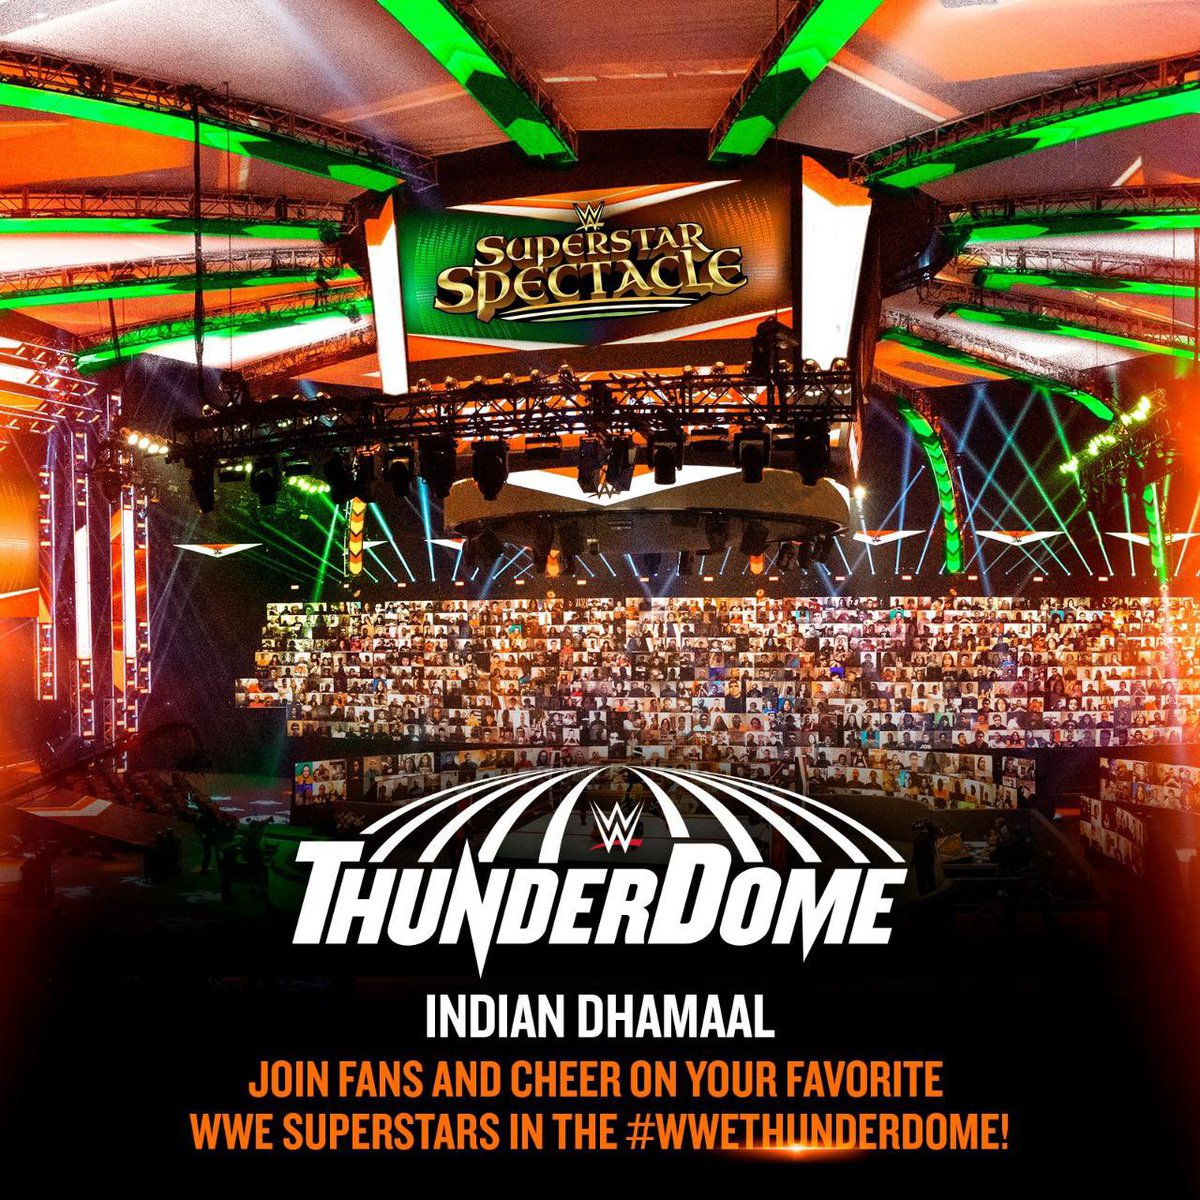 Replying to @BollywoodBoyz: Turning the #WWEThunderdome to the Bolly-Bolly-Bollywood dome 🎥🎬  #WWESuperstarSpectacle 🇮🇳